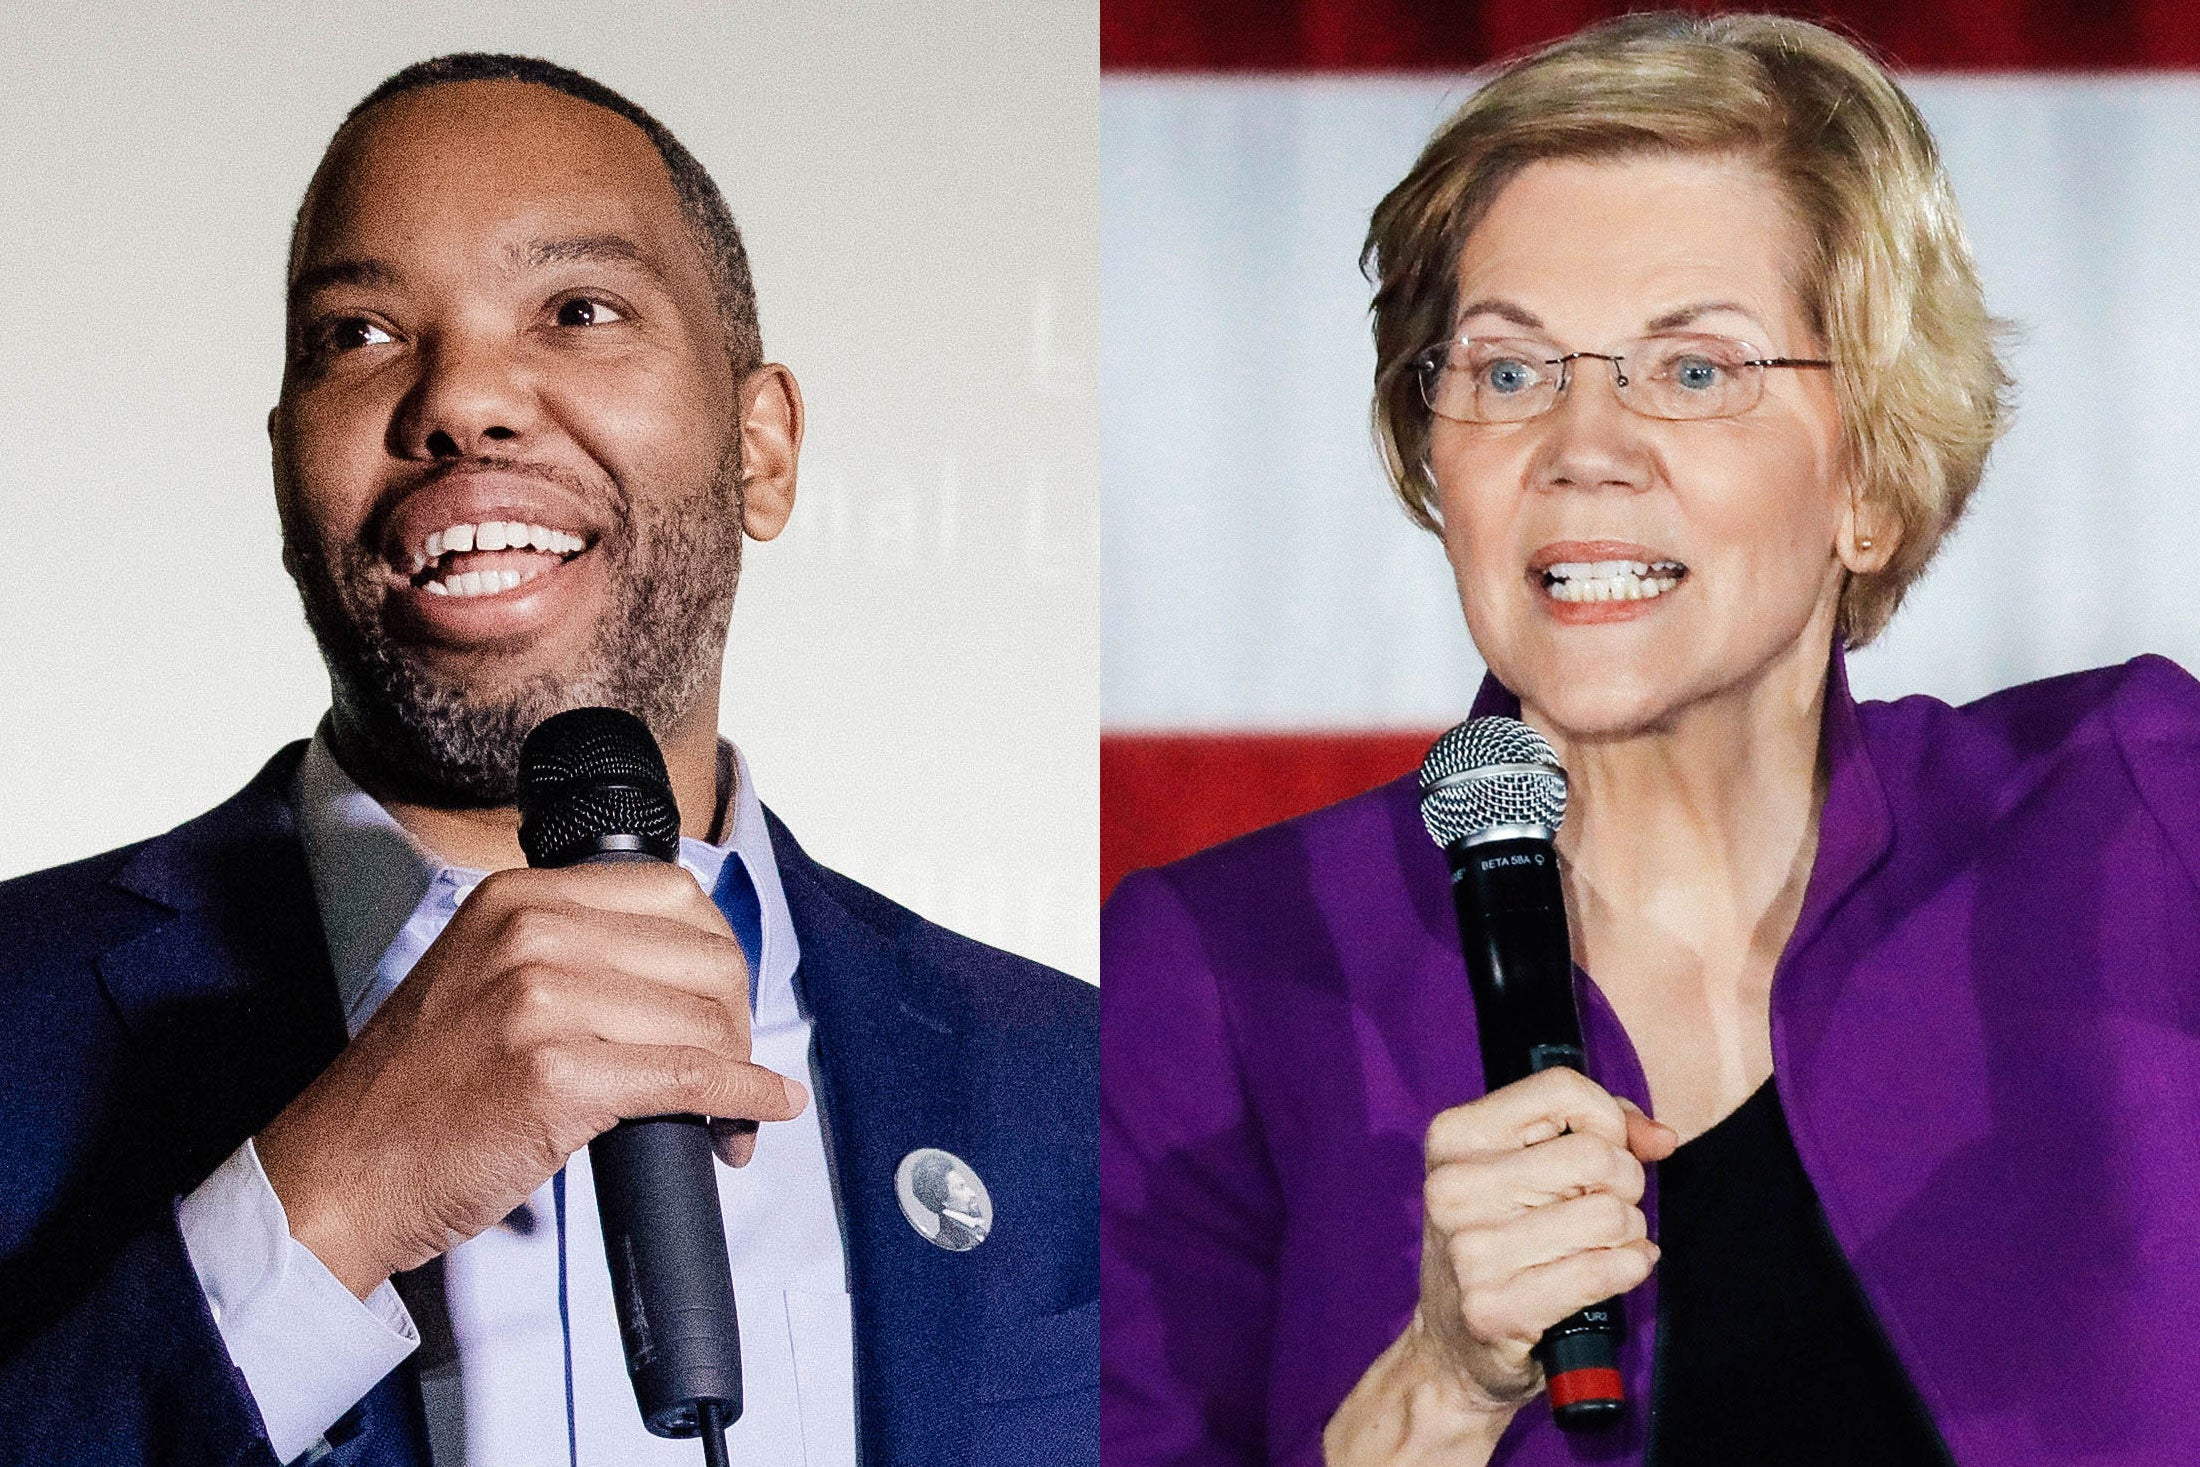 Coates and Warren pictured side by side, both wearing a jacket over a shirt and holding a microphone.